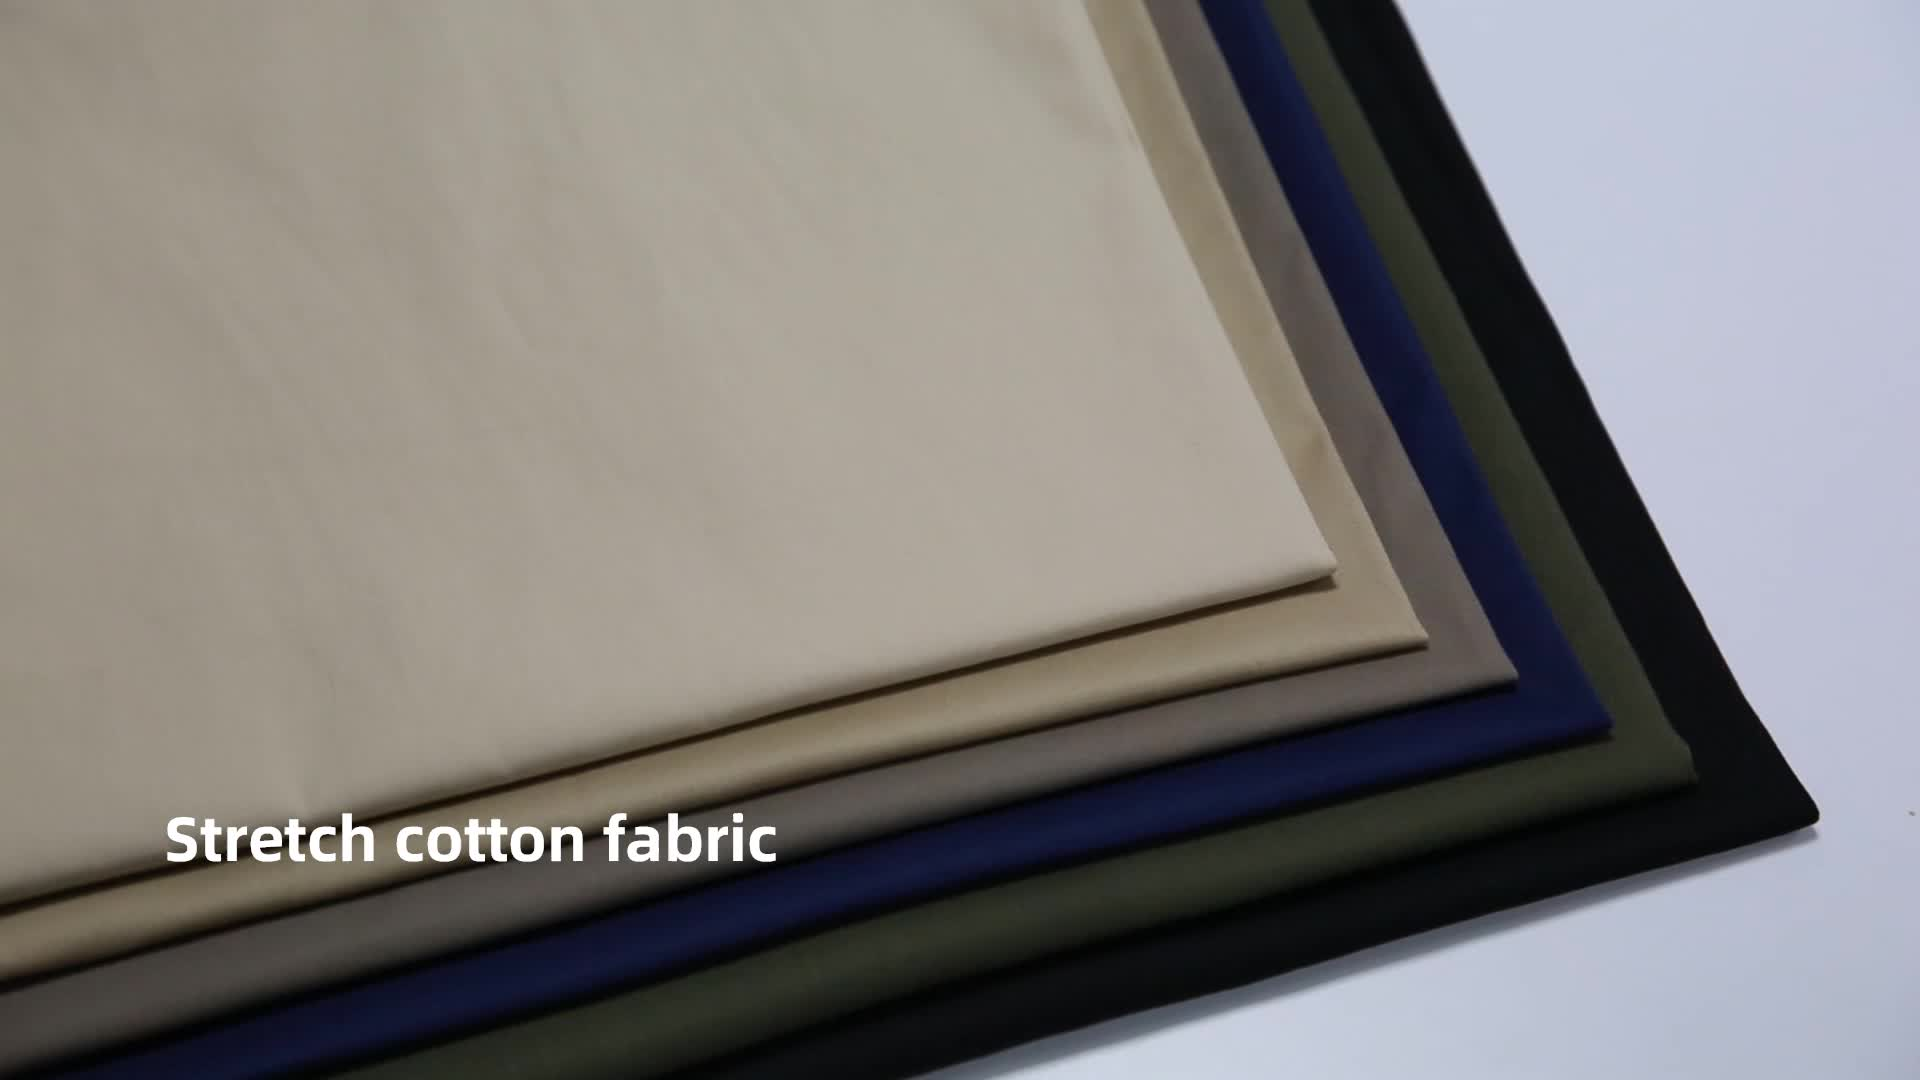 2017 100% dyed fabric for pants/cotton twill fabric stocklot best selling cheap price 100% cotton twill fabric stocklot